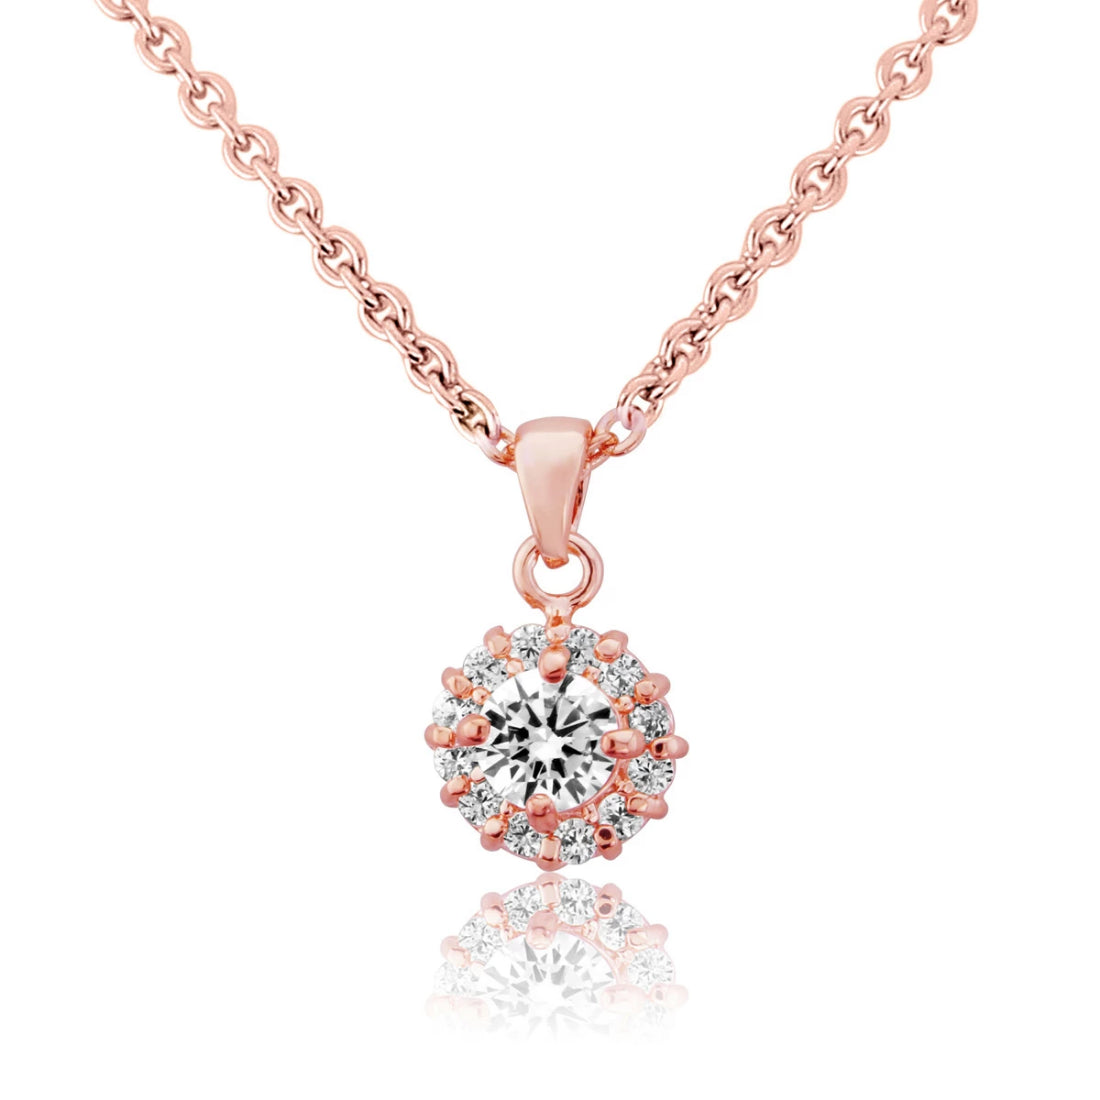 Blush of Eternity Cubic Zirconia Pendant